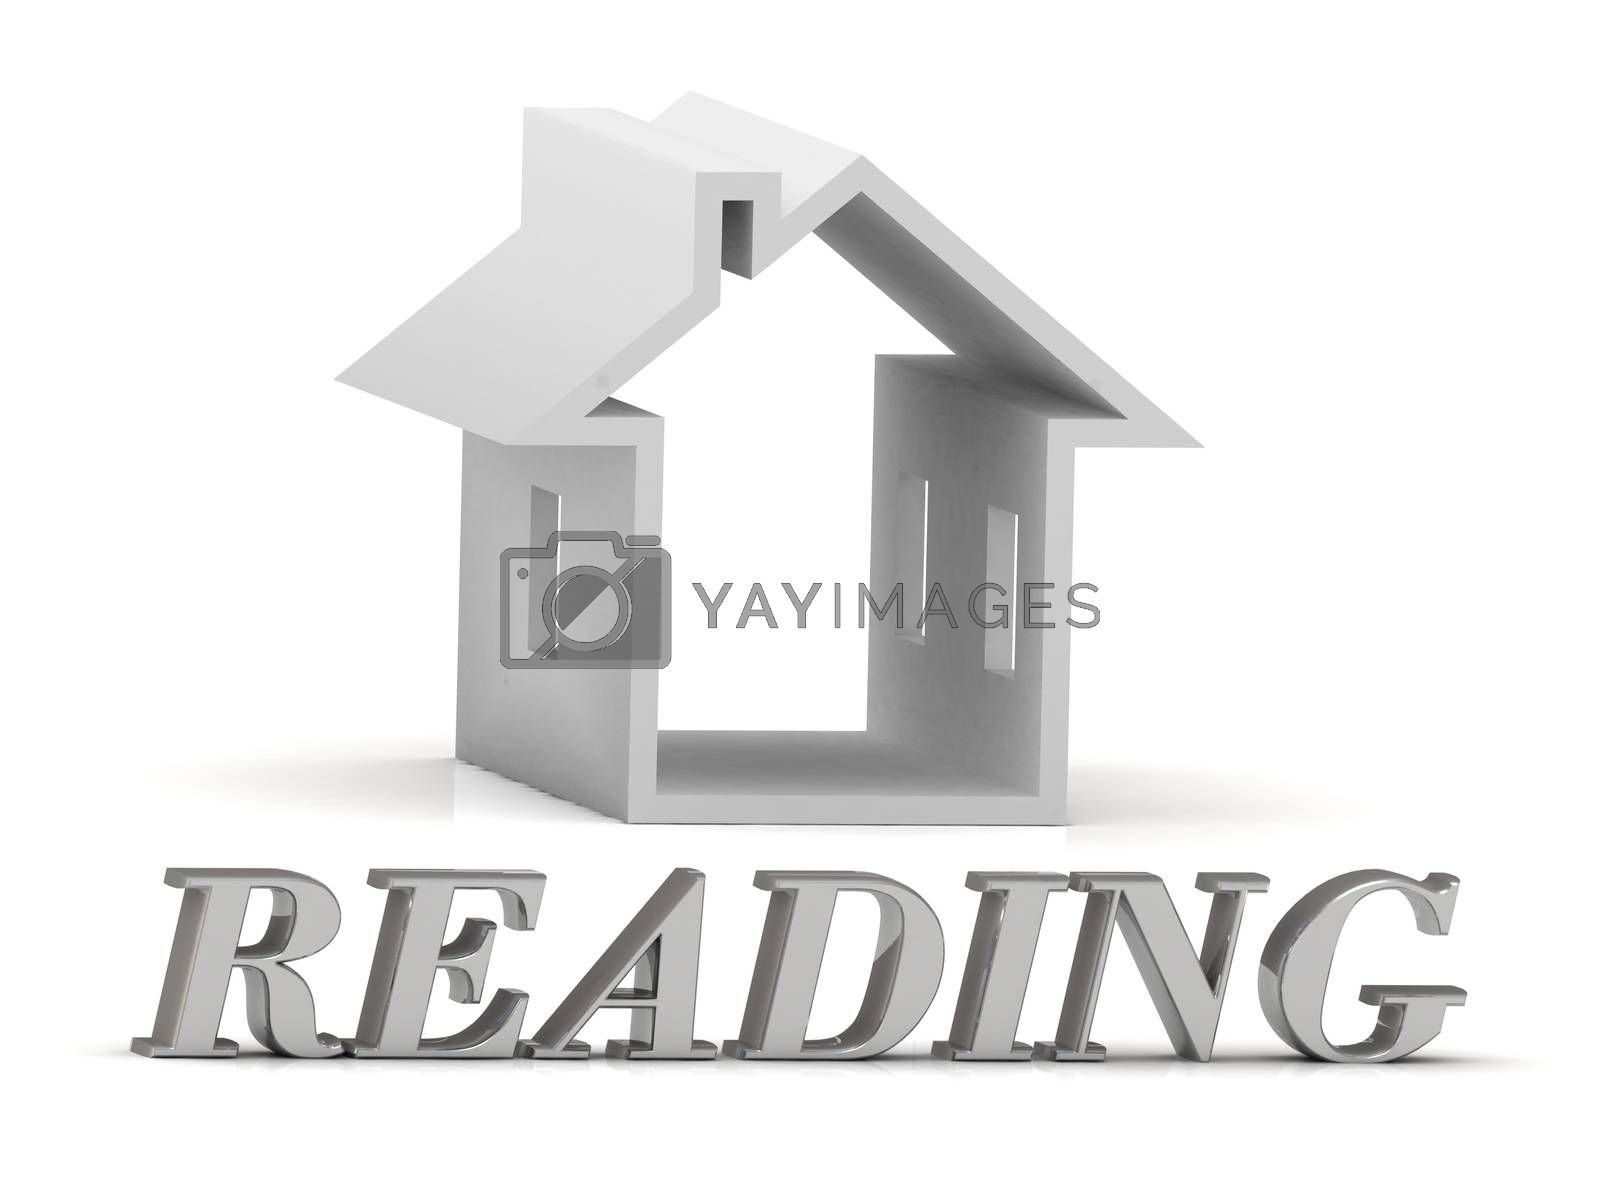 READING- inscription of silver letters and white house on white background